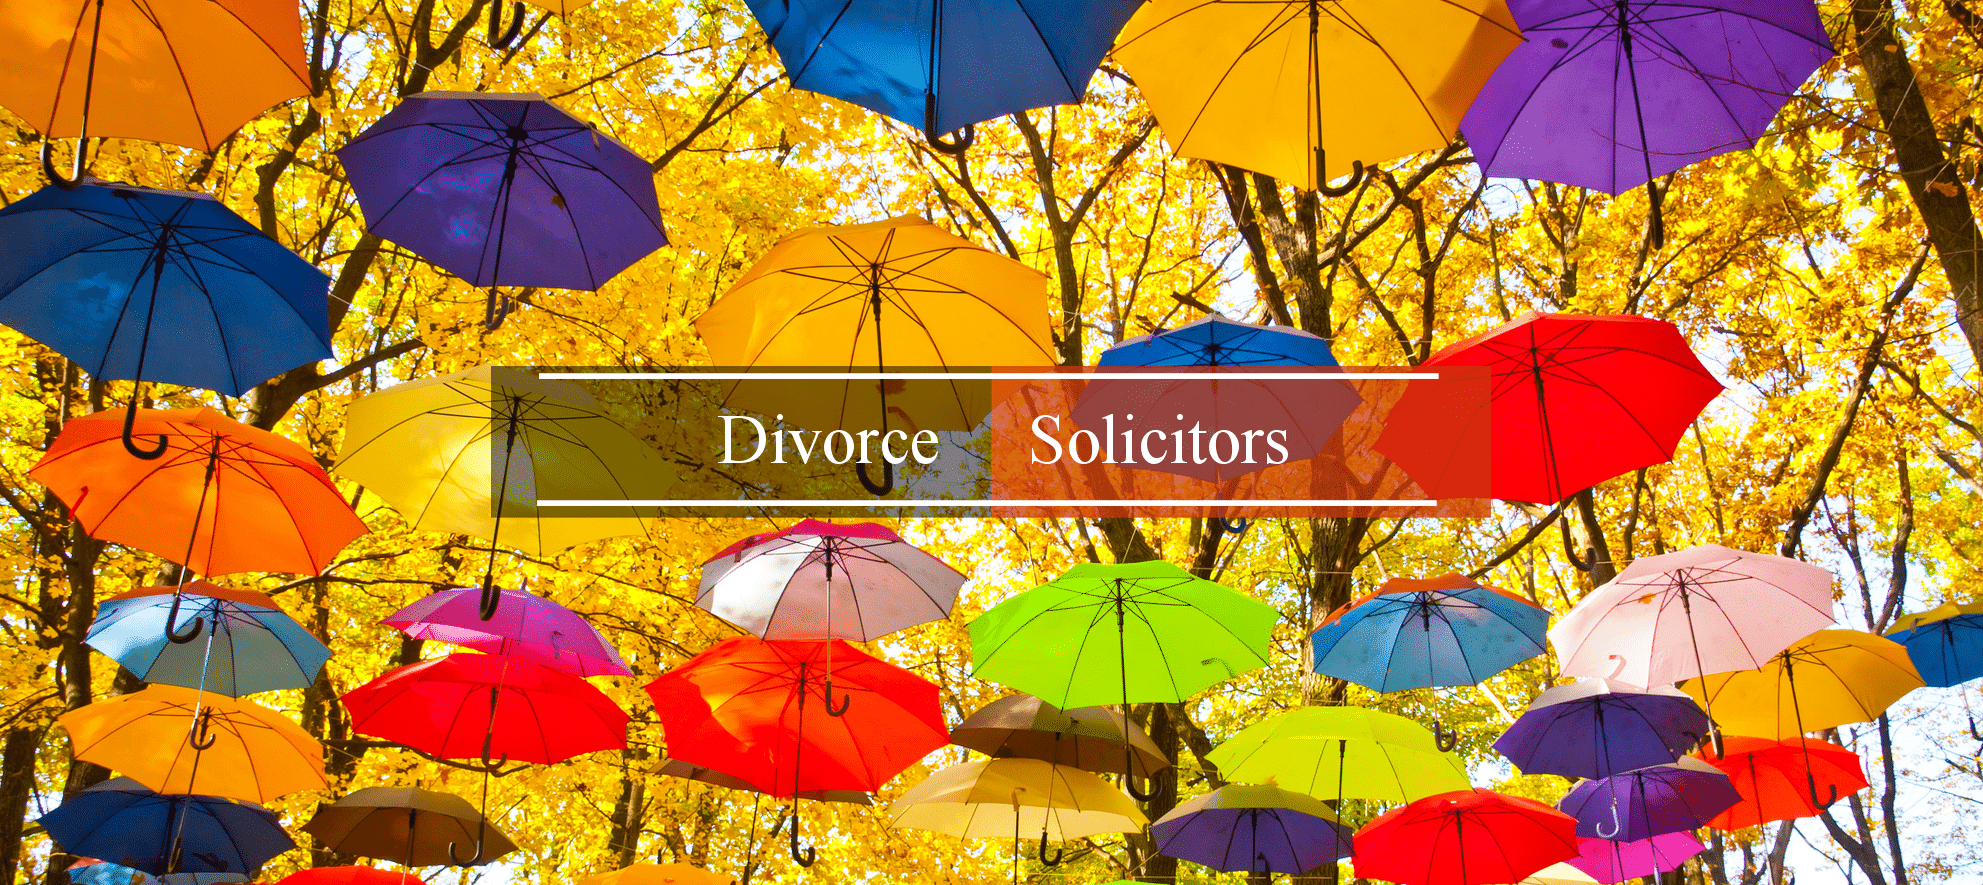 divorce solicitors